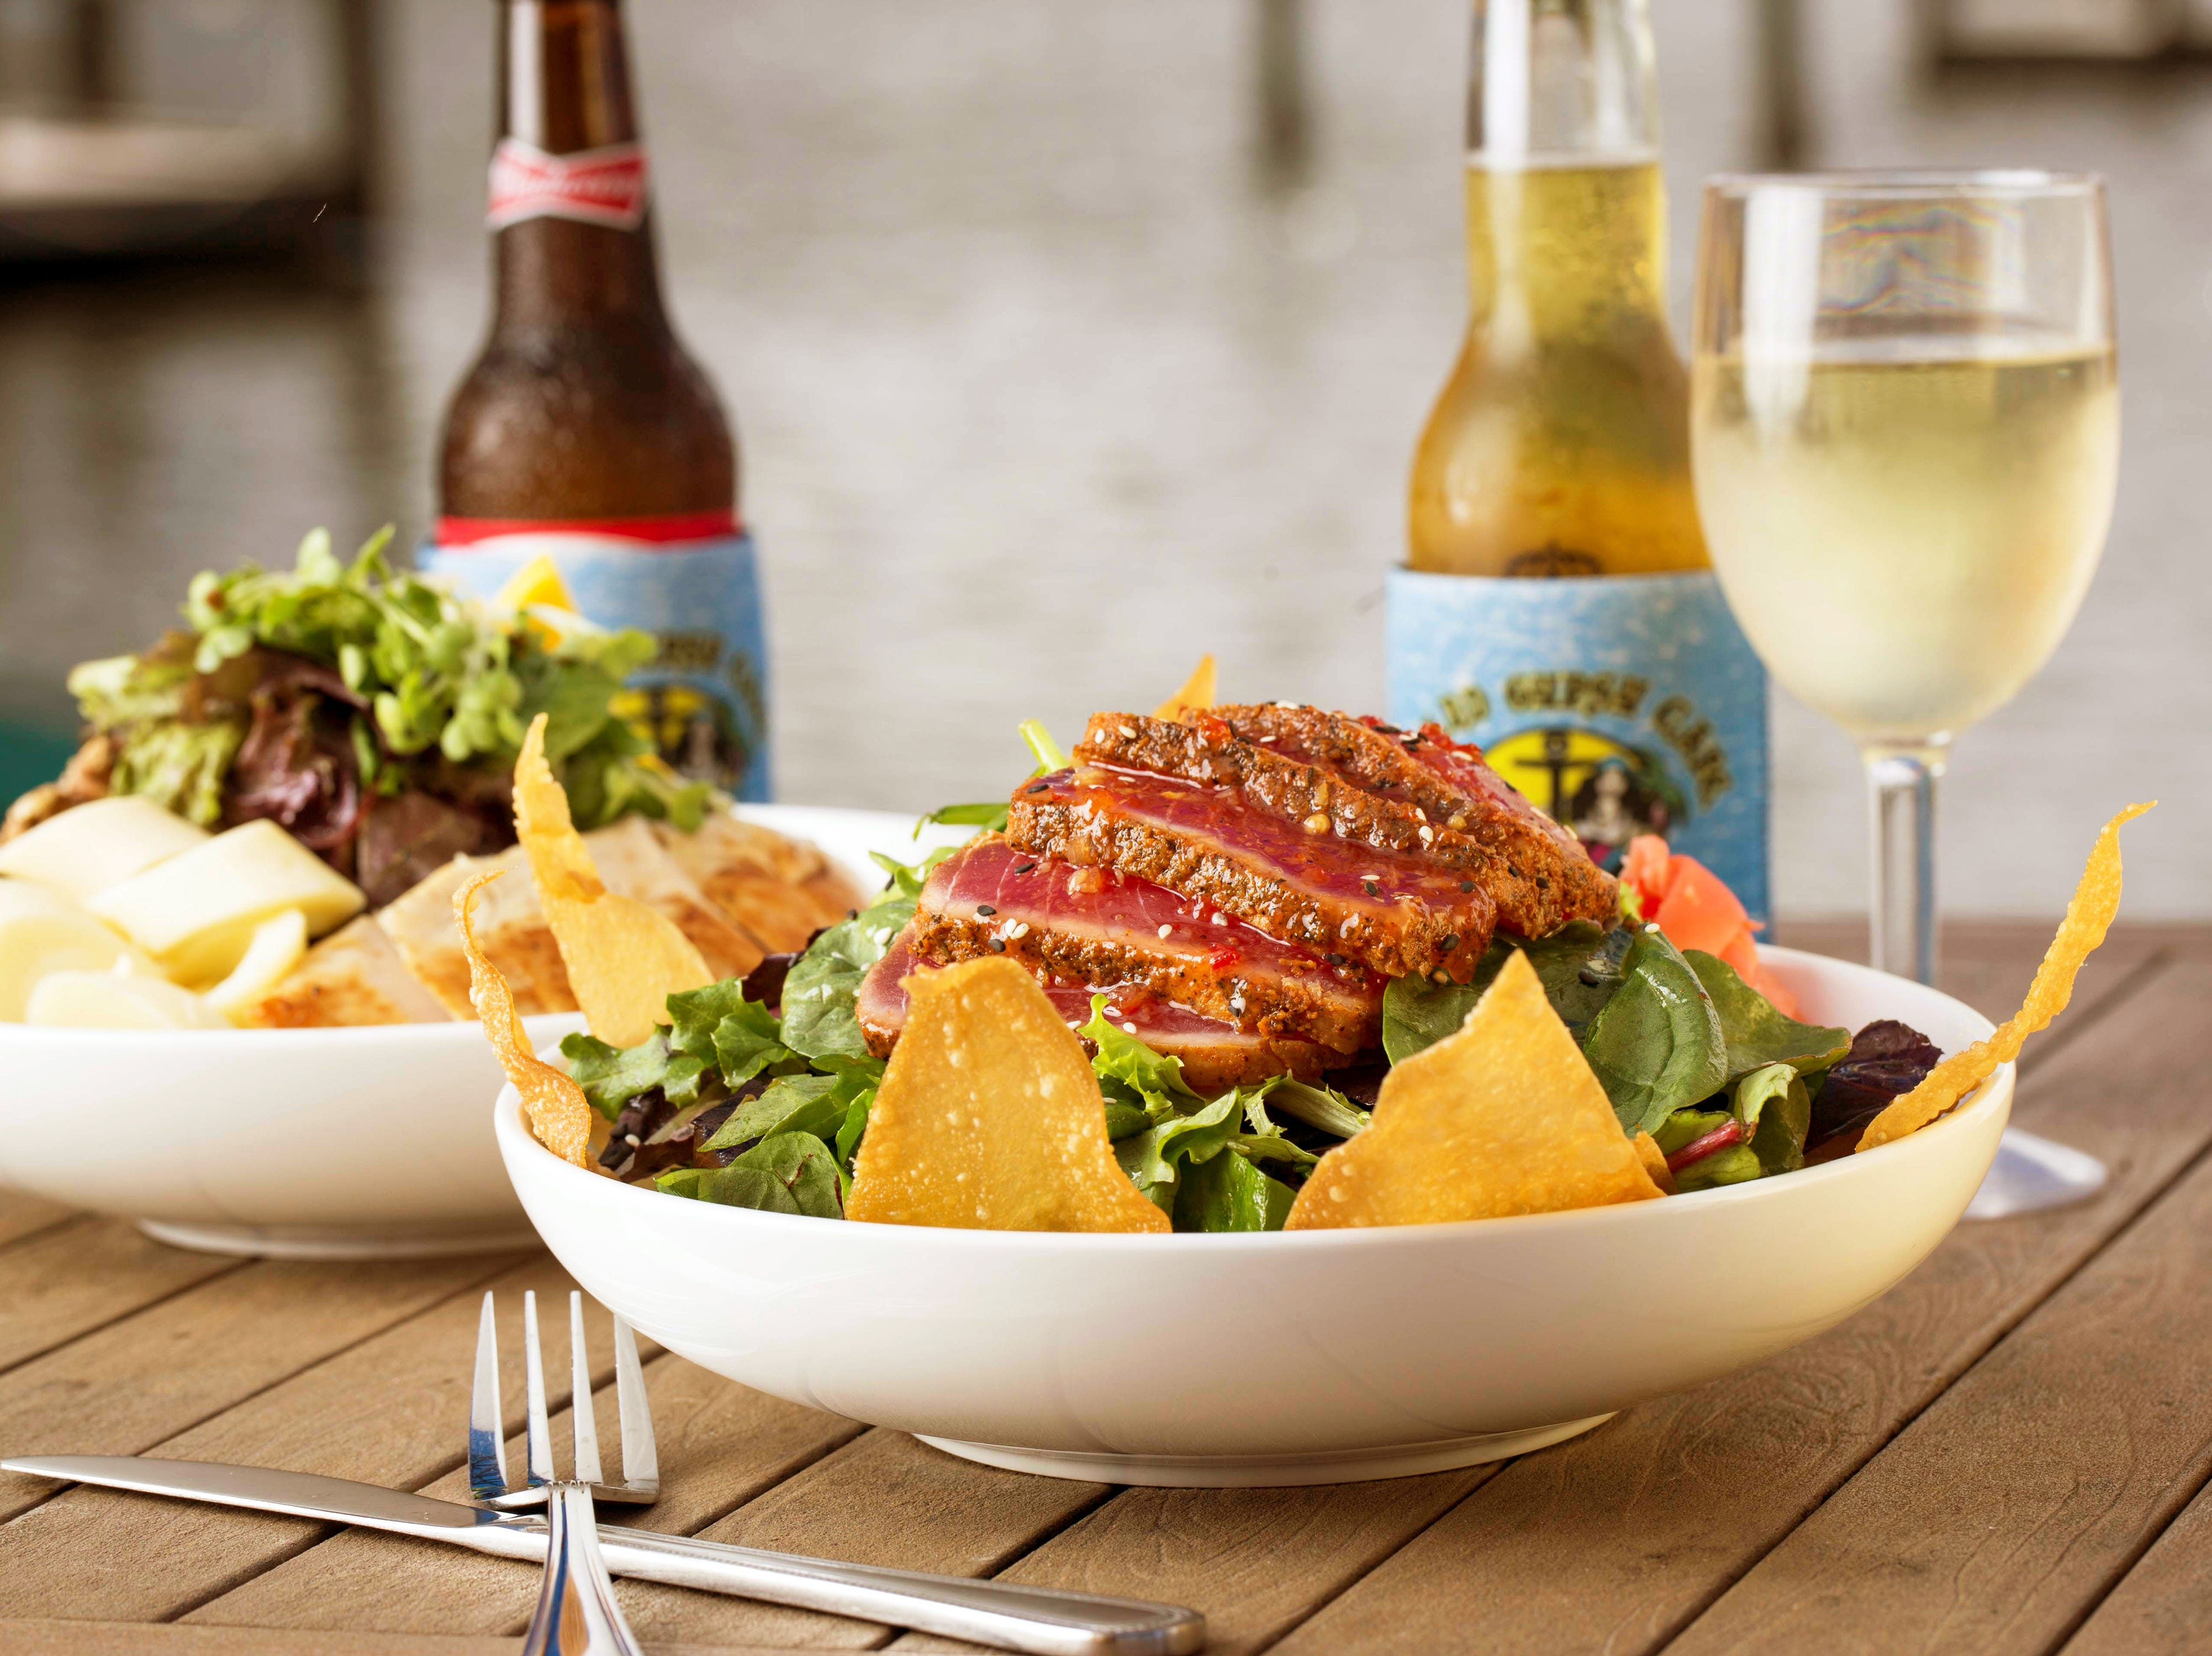 Dayle's Tuna Wonton Salad features seared ahi tuna and crispy wontons at Island Gypsy Poolside Cafe in Naples.